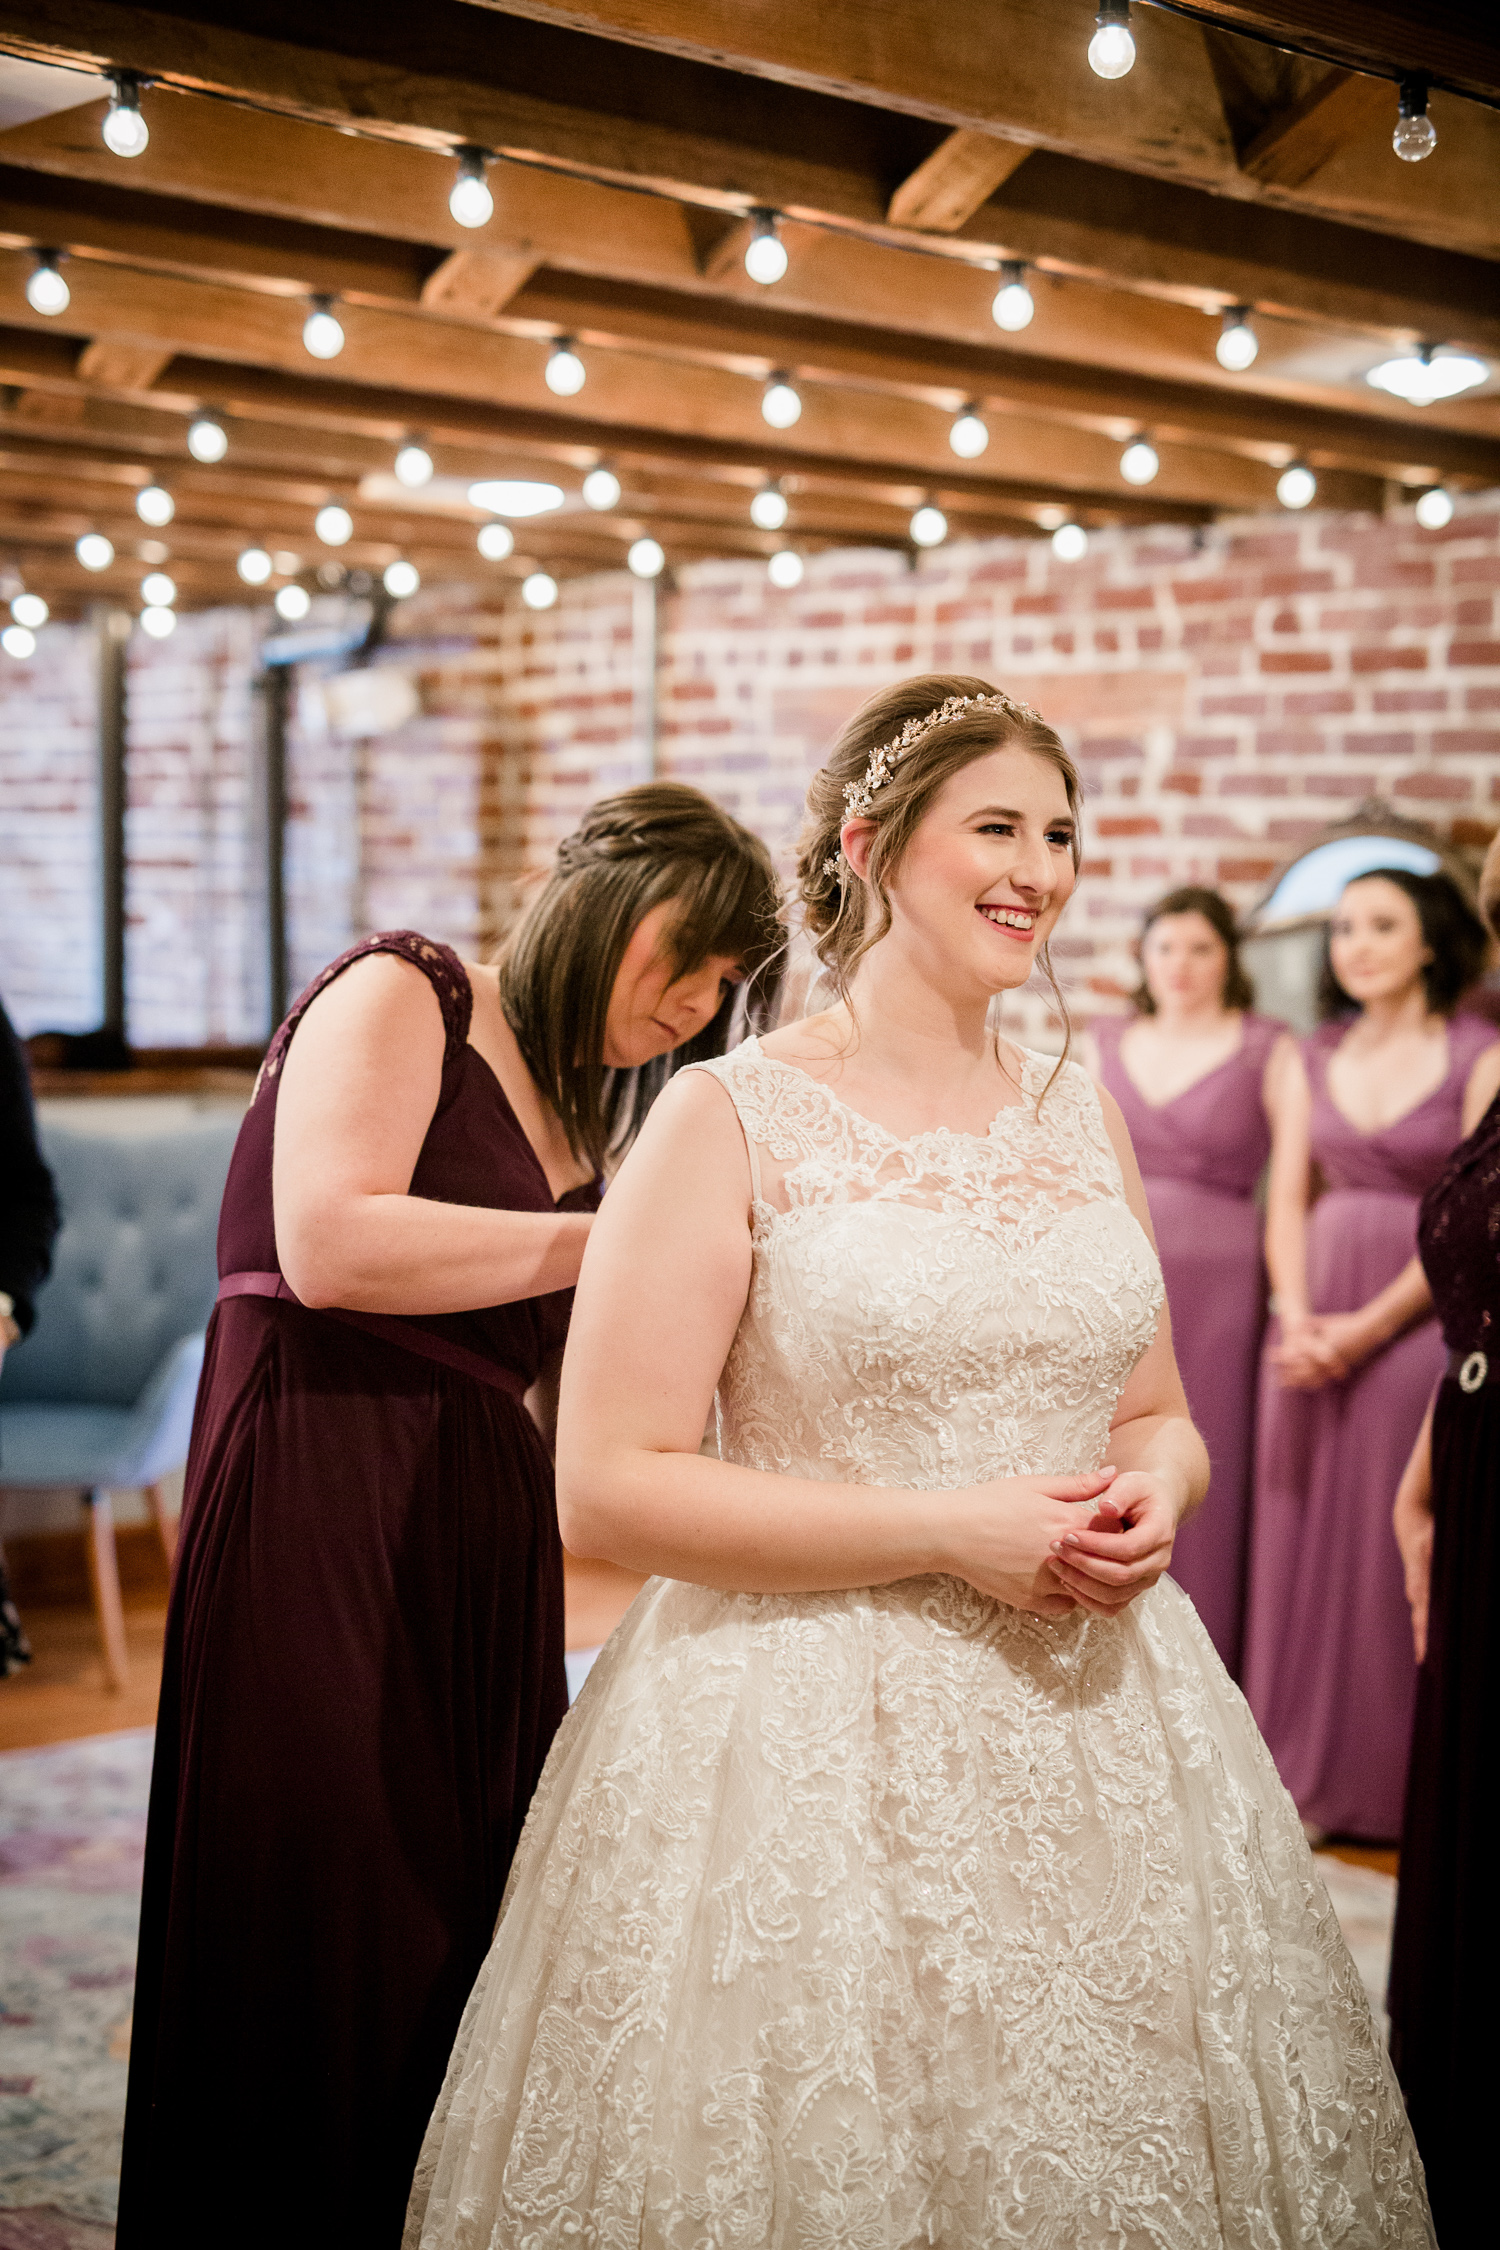 Downtown Knoxville Wedding Venue // Central Avenue Reception // Bridal Gown